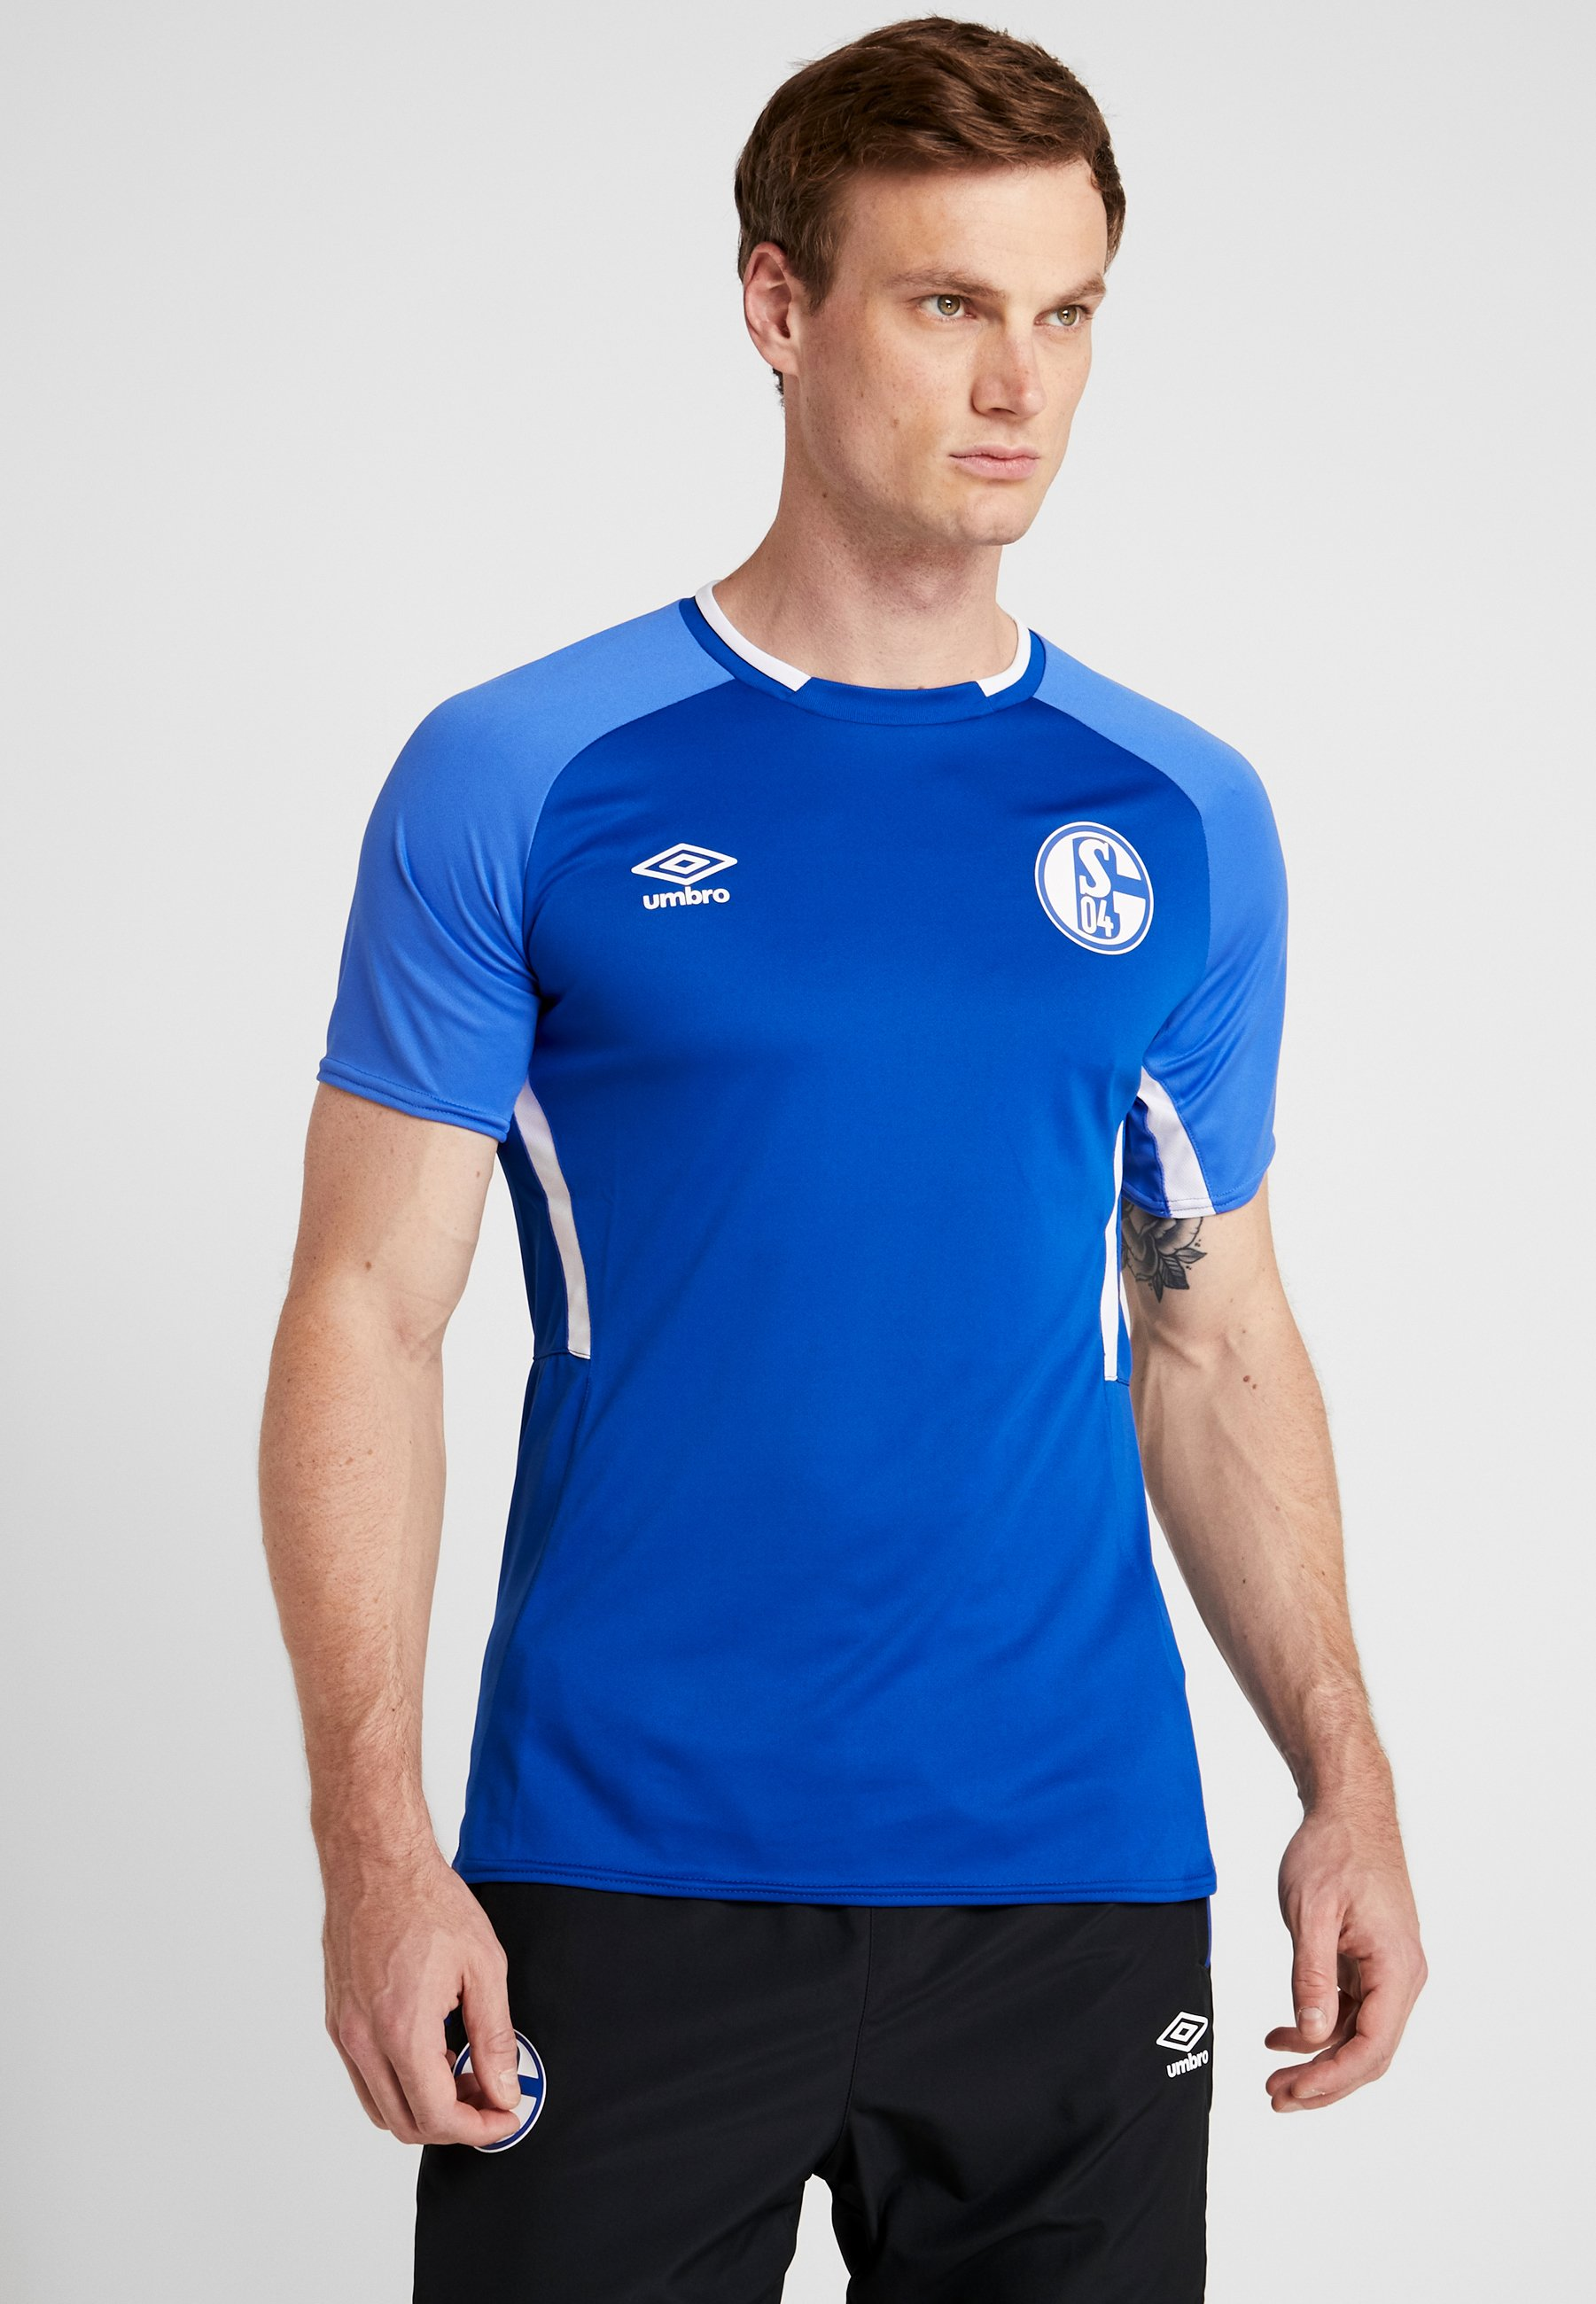 TrainingArticle Surf Schalke Deep dazzling Umbro Fc De 04 Blue brilliant White Supporter 2EHD9I